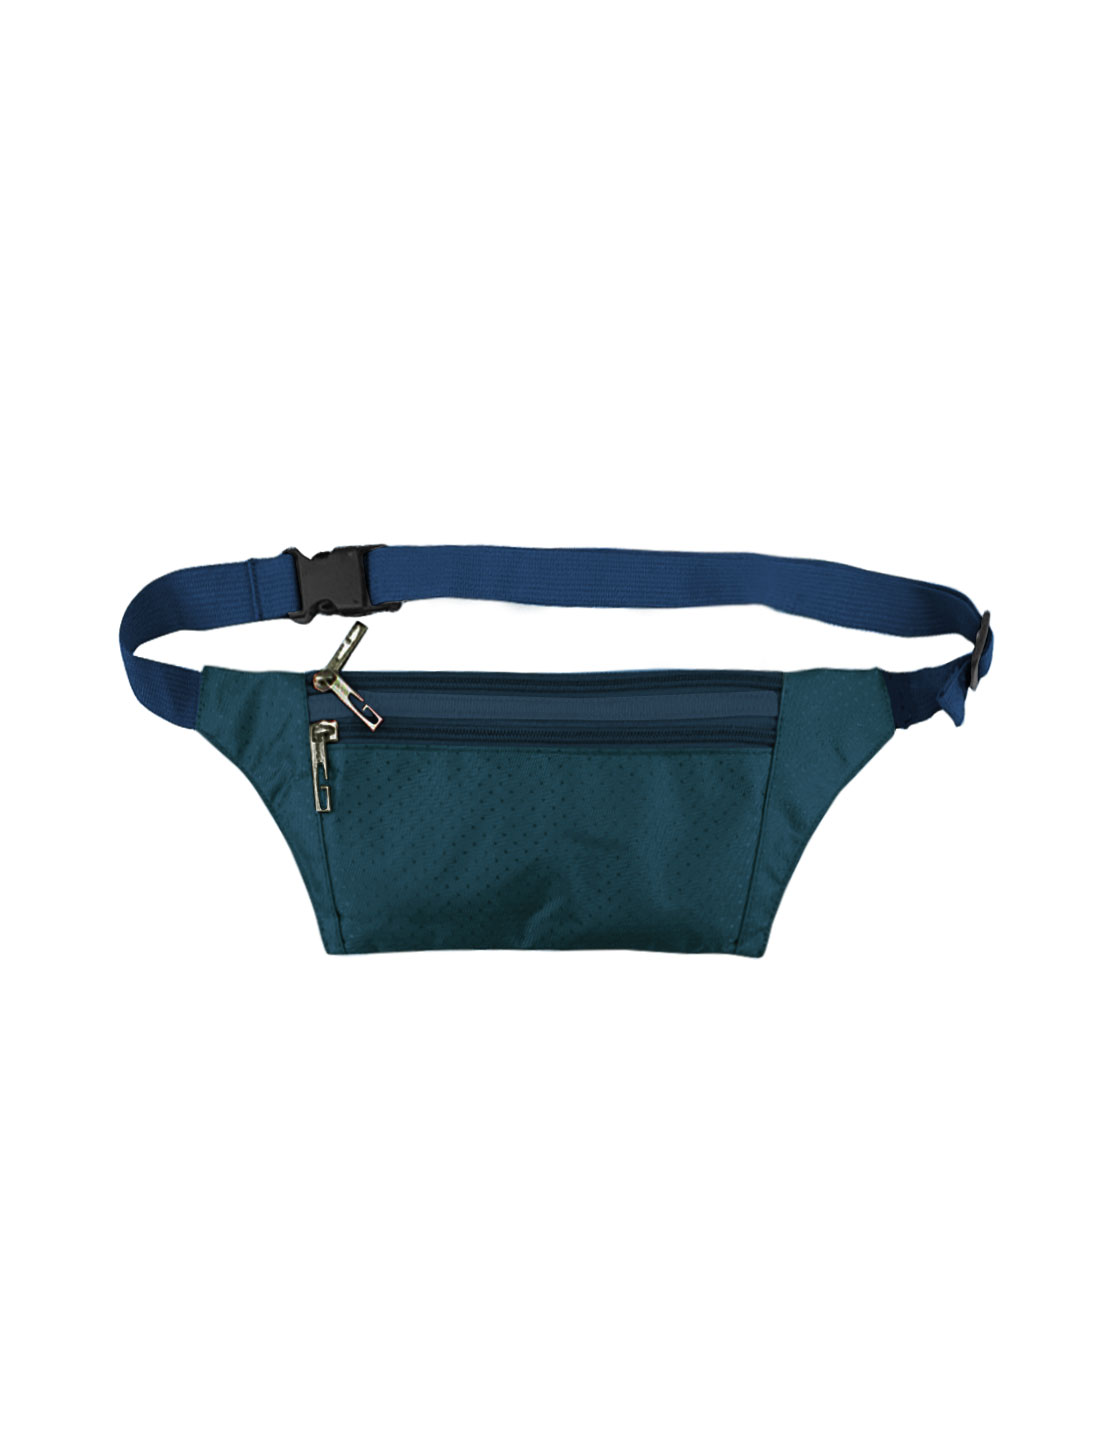 Unisex Three Zipper Pockets Argyle Design Waist Bag Navy Blue